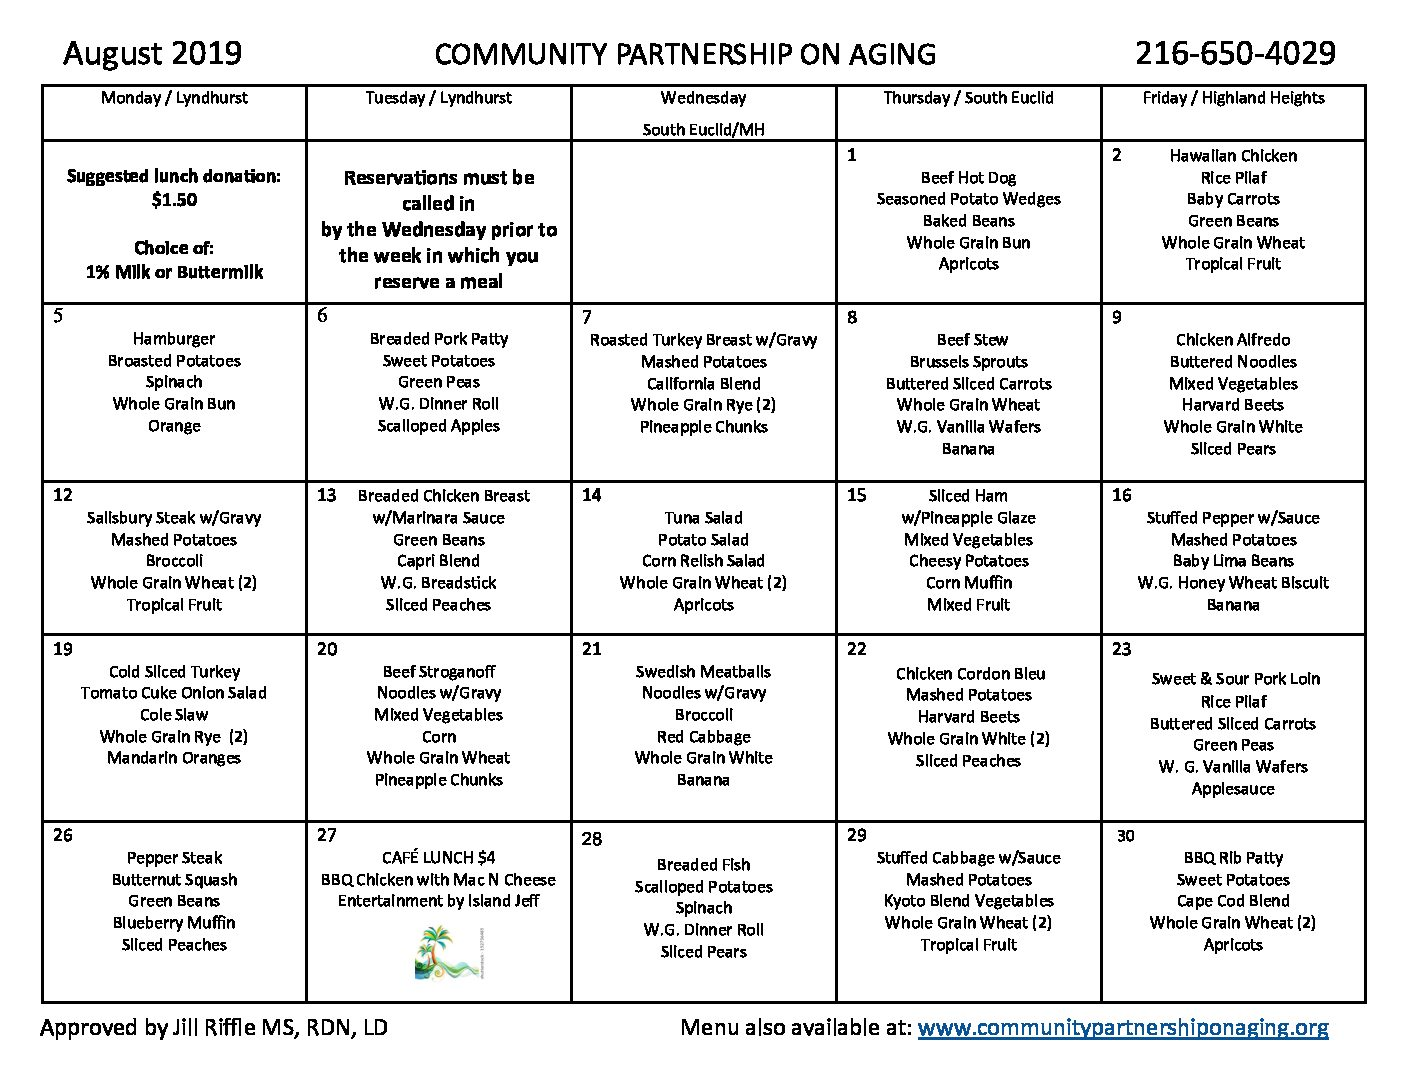 August 2019 CPA Lunch Menu